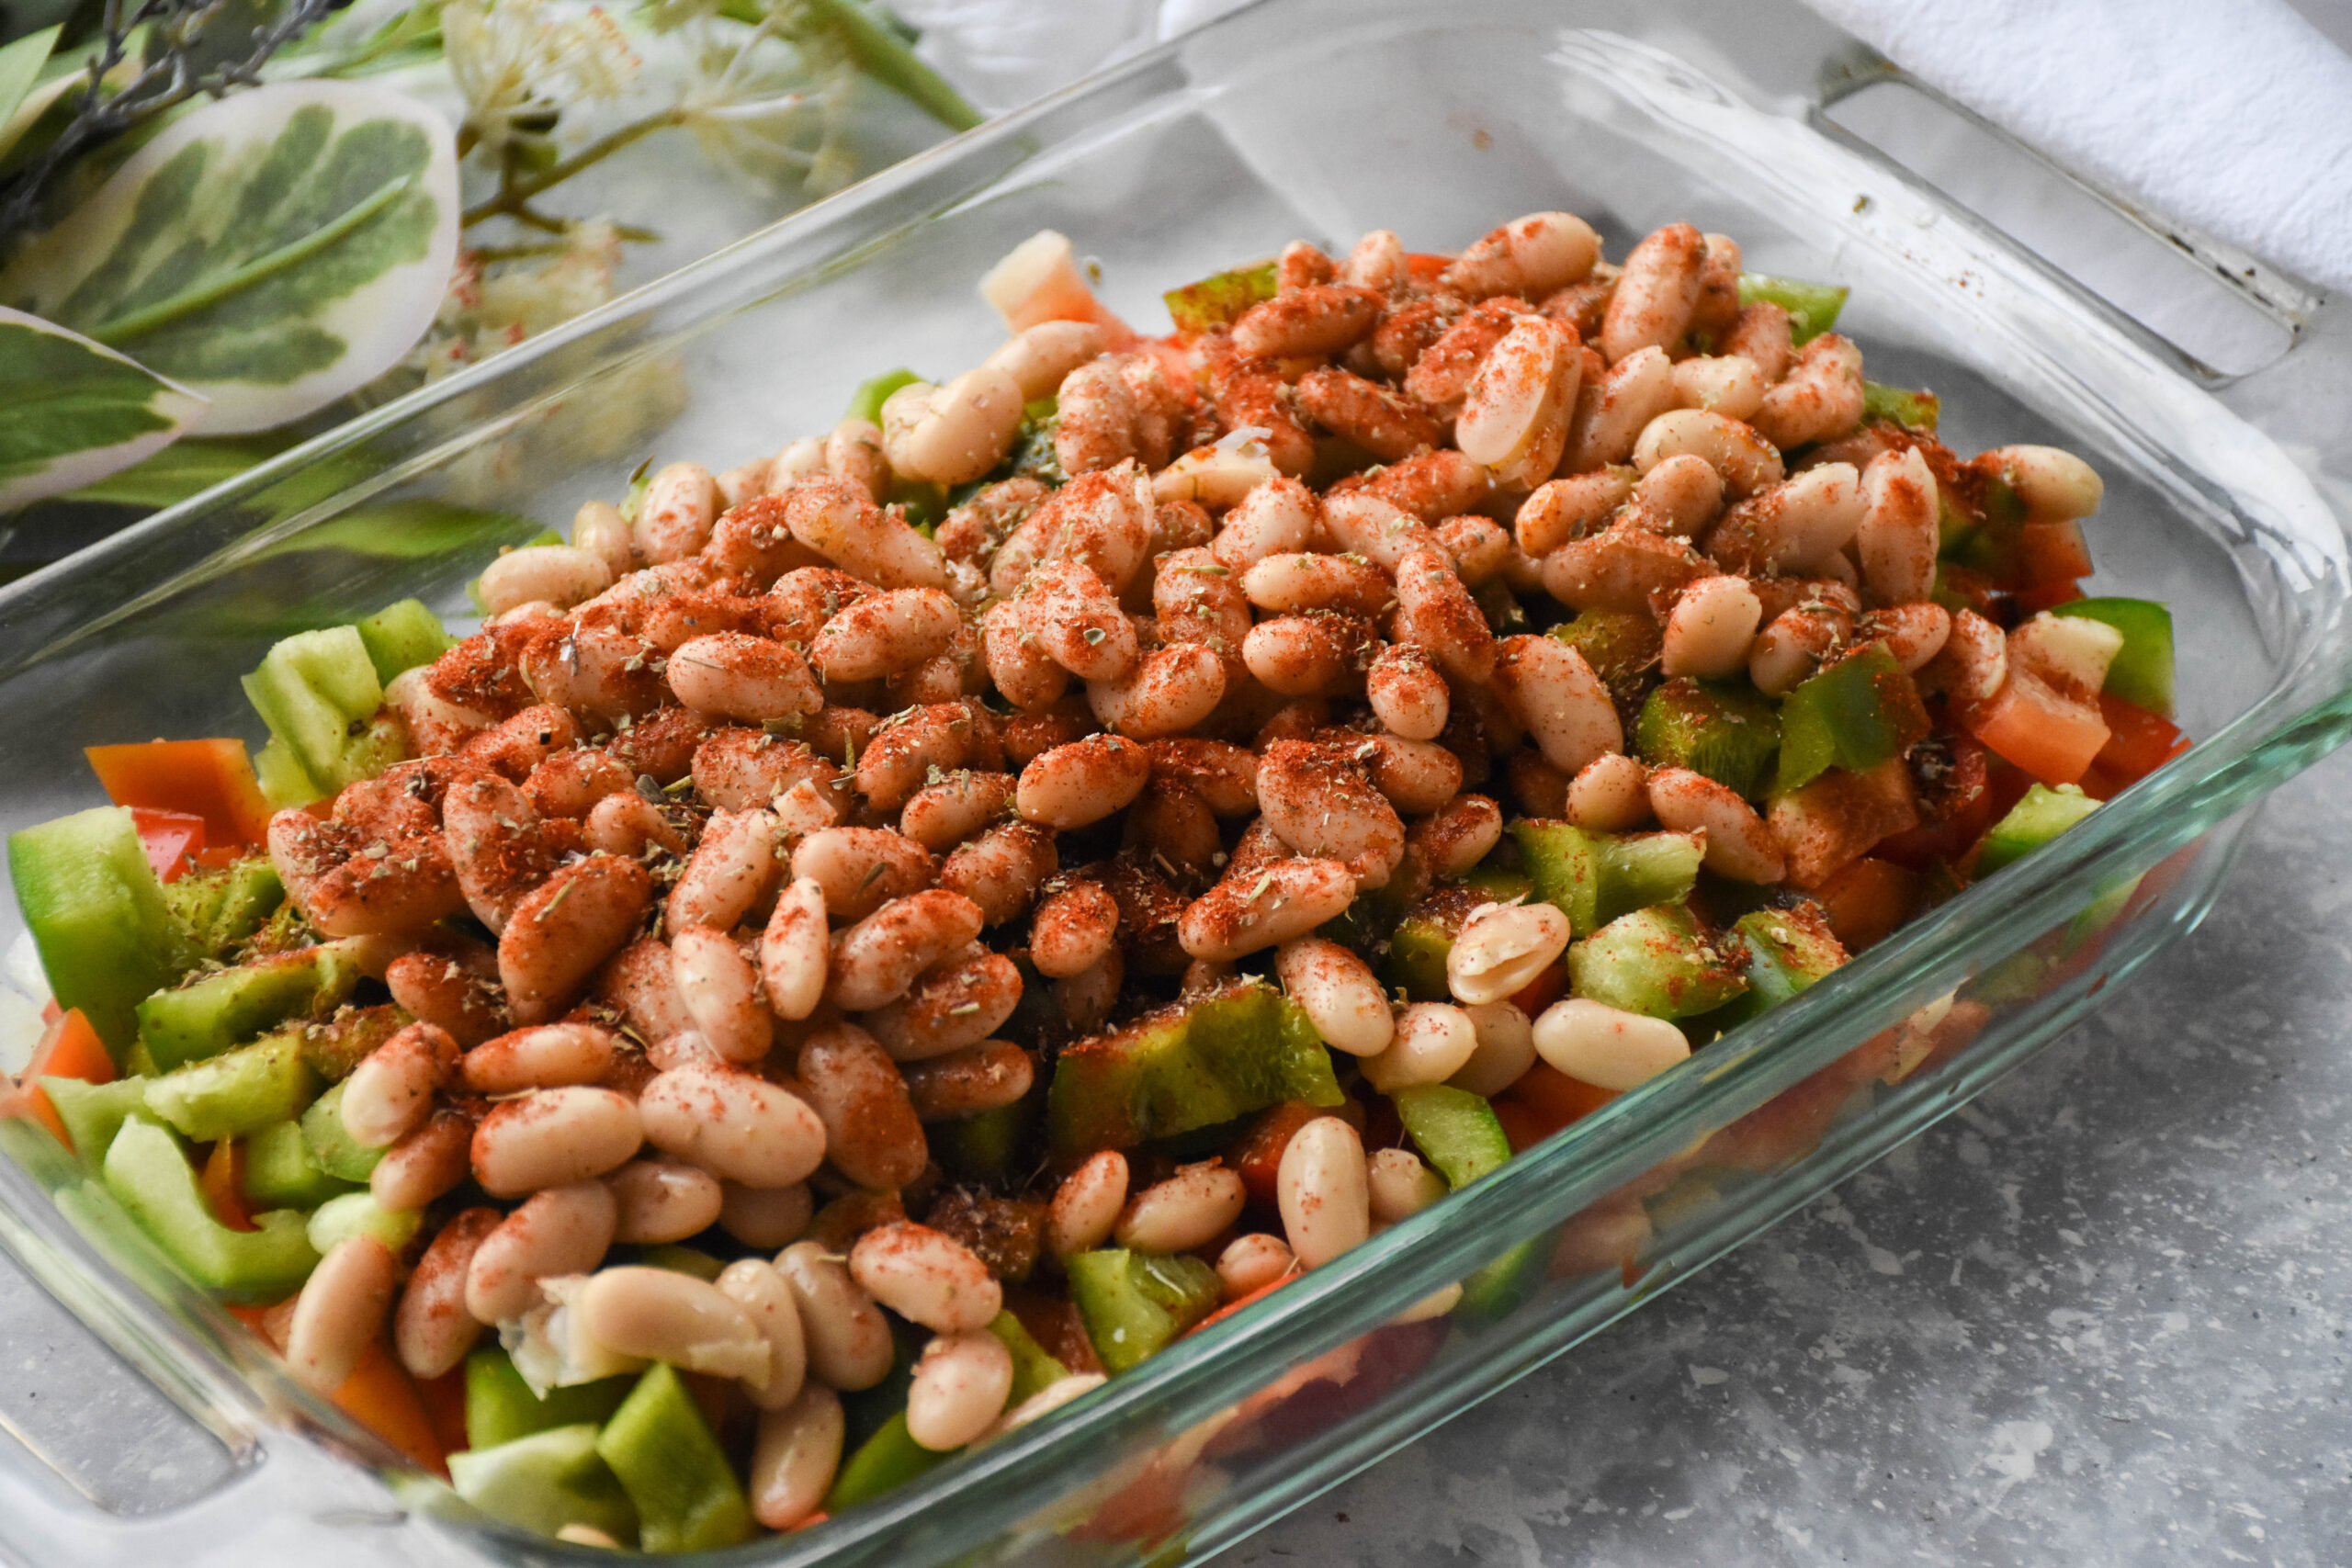 cannellini beans and vegetables in a casserole dish